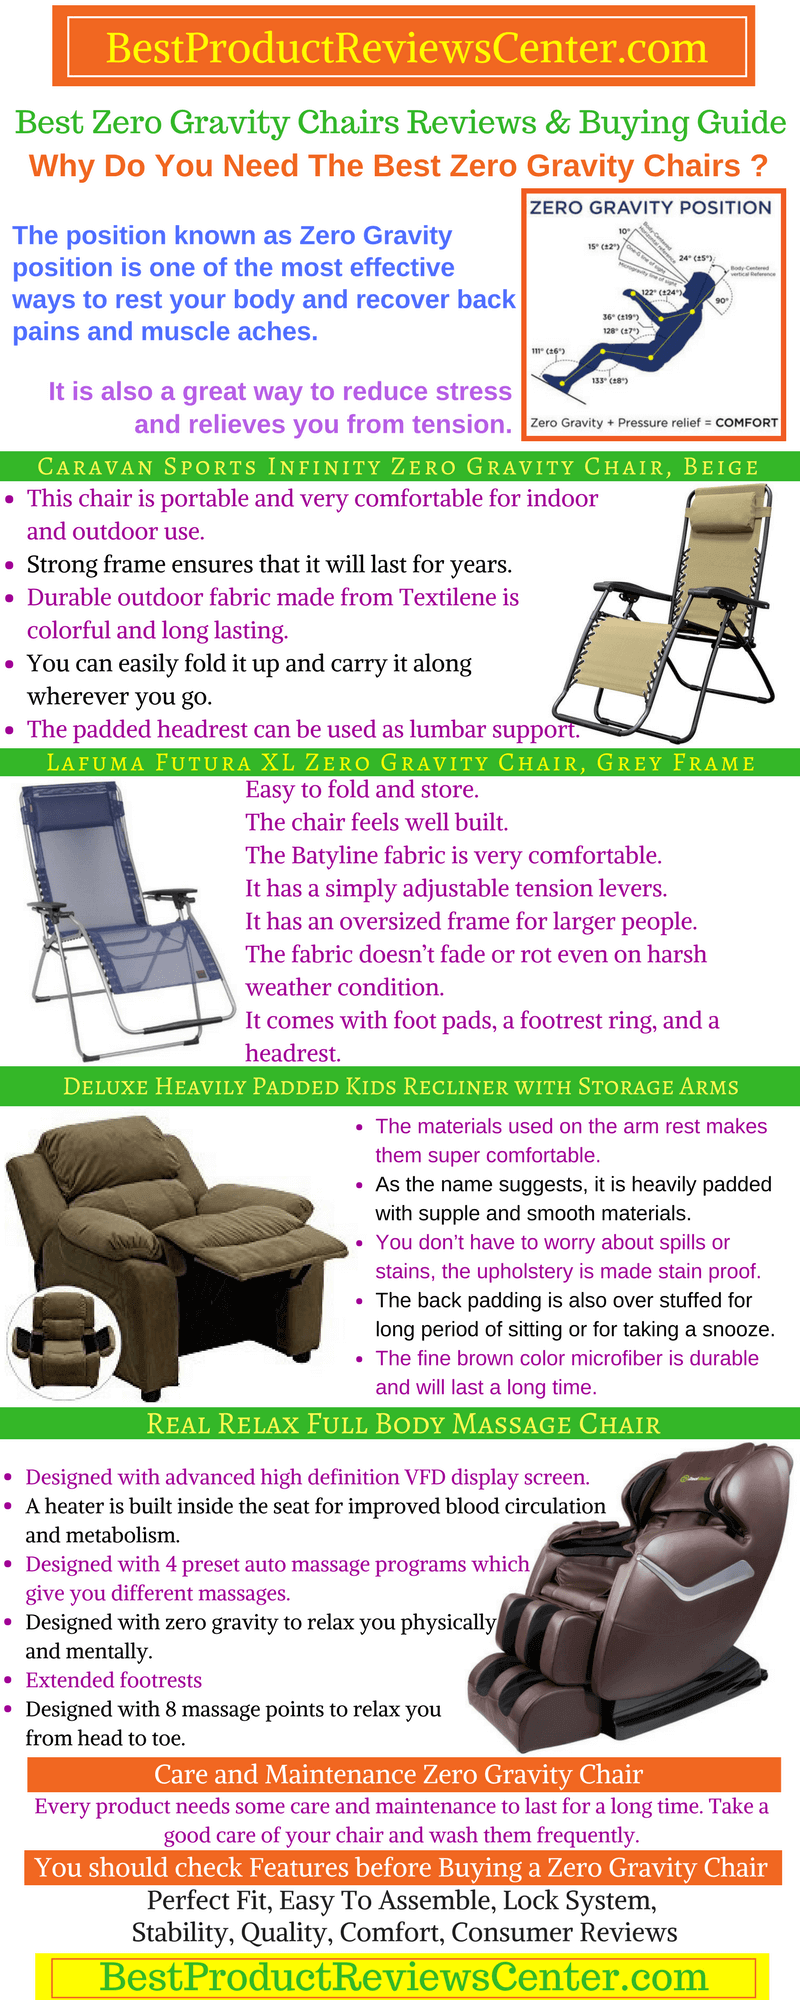 Things To Consider Before Buying The Best Zero Gravity Chair